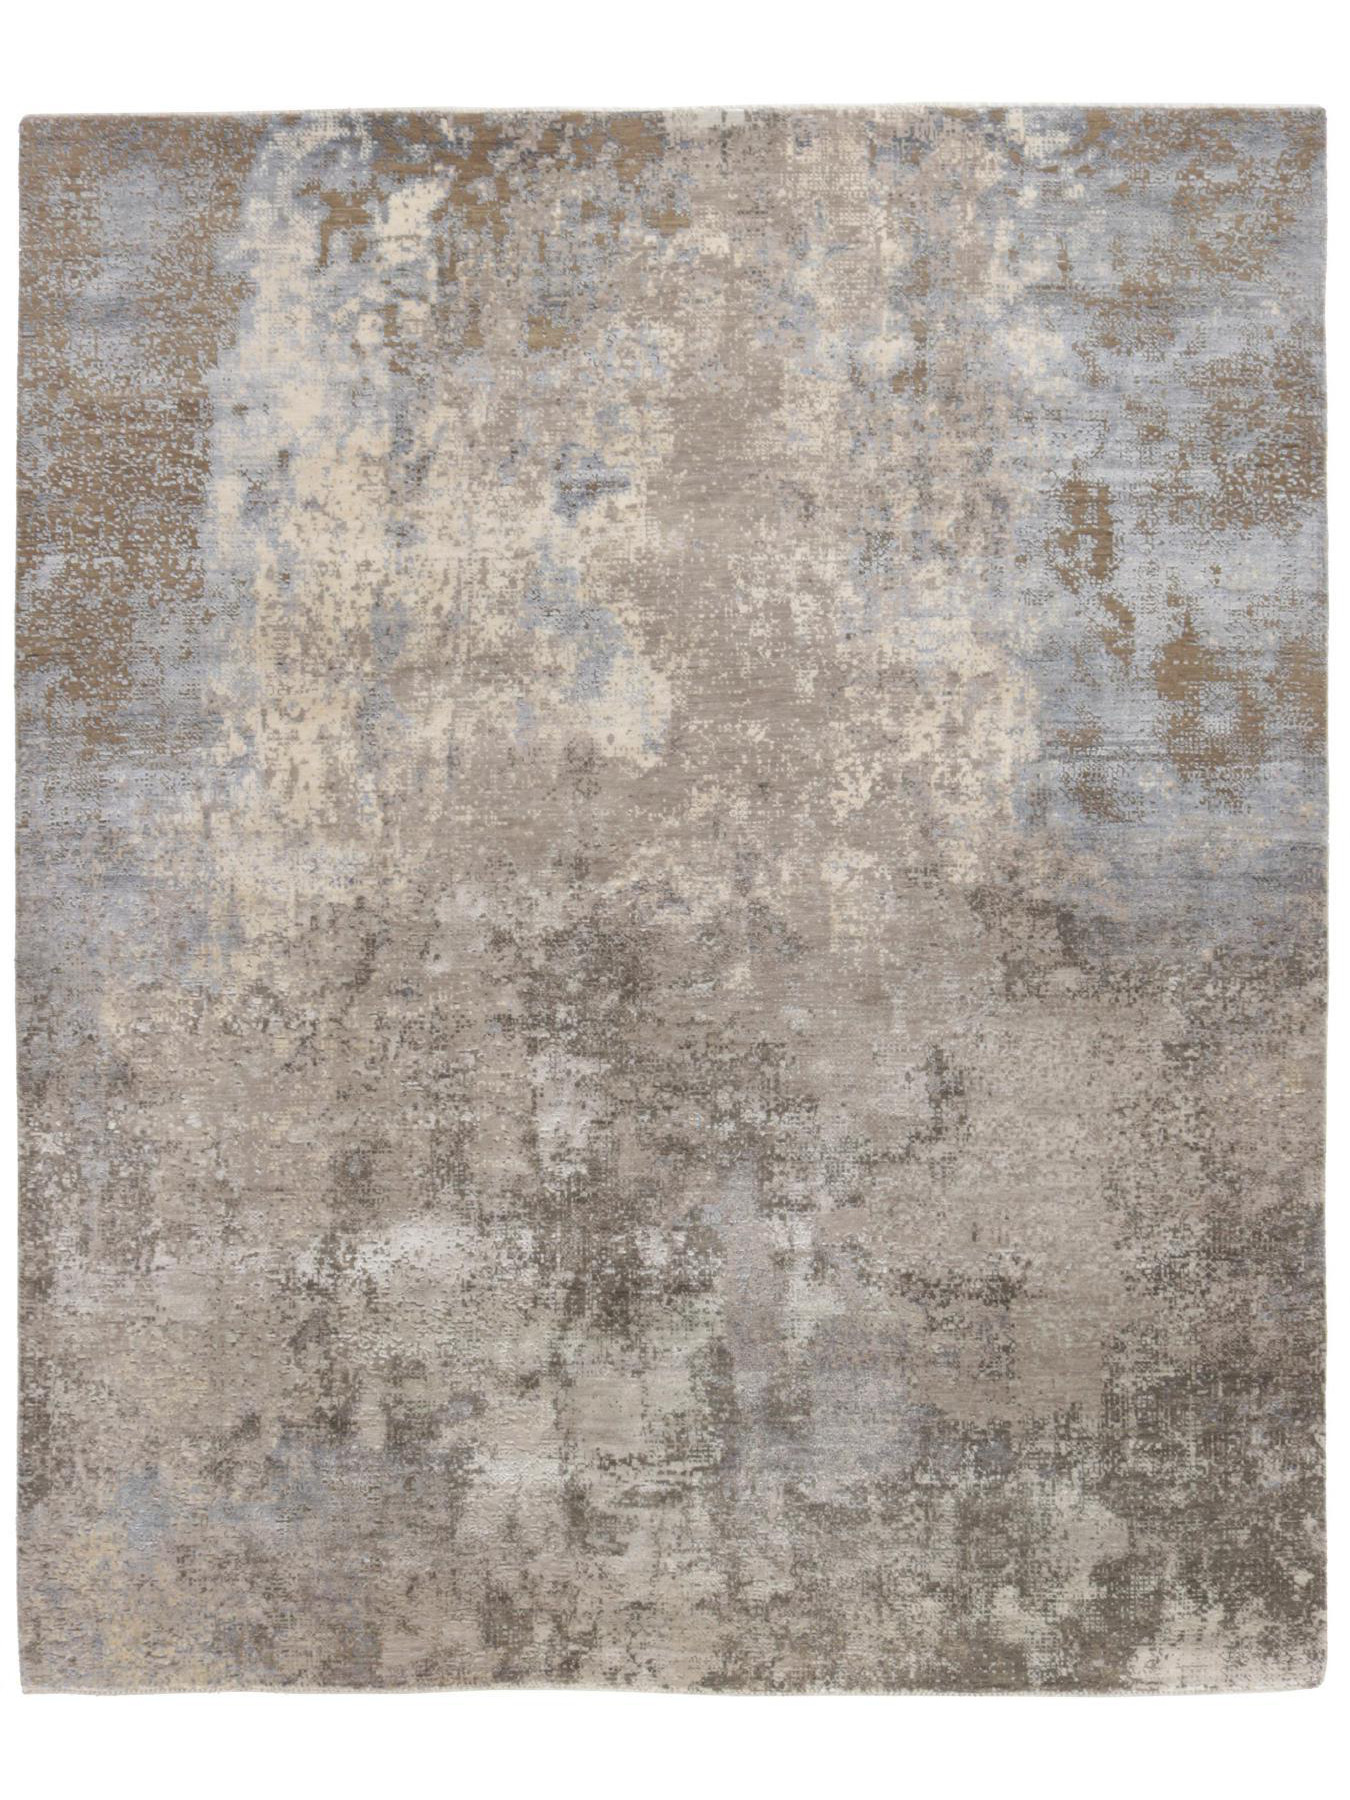 Design carpets - Seduction-840162B